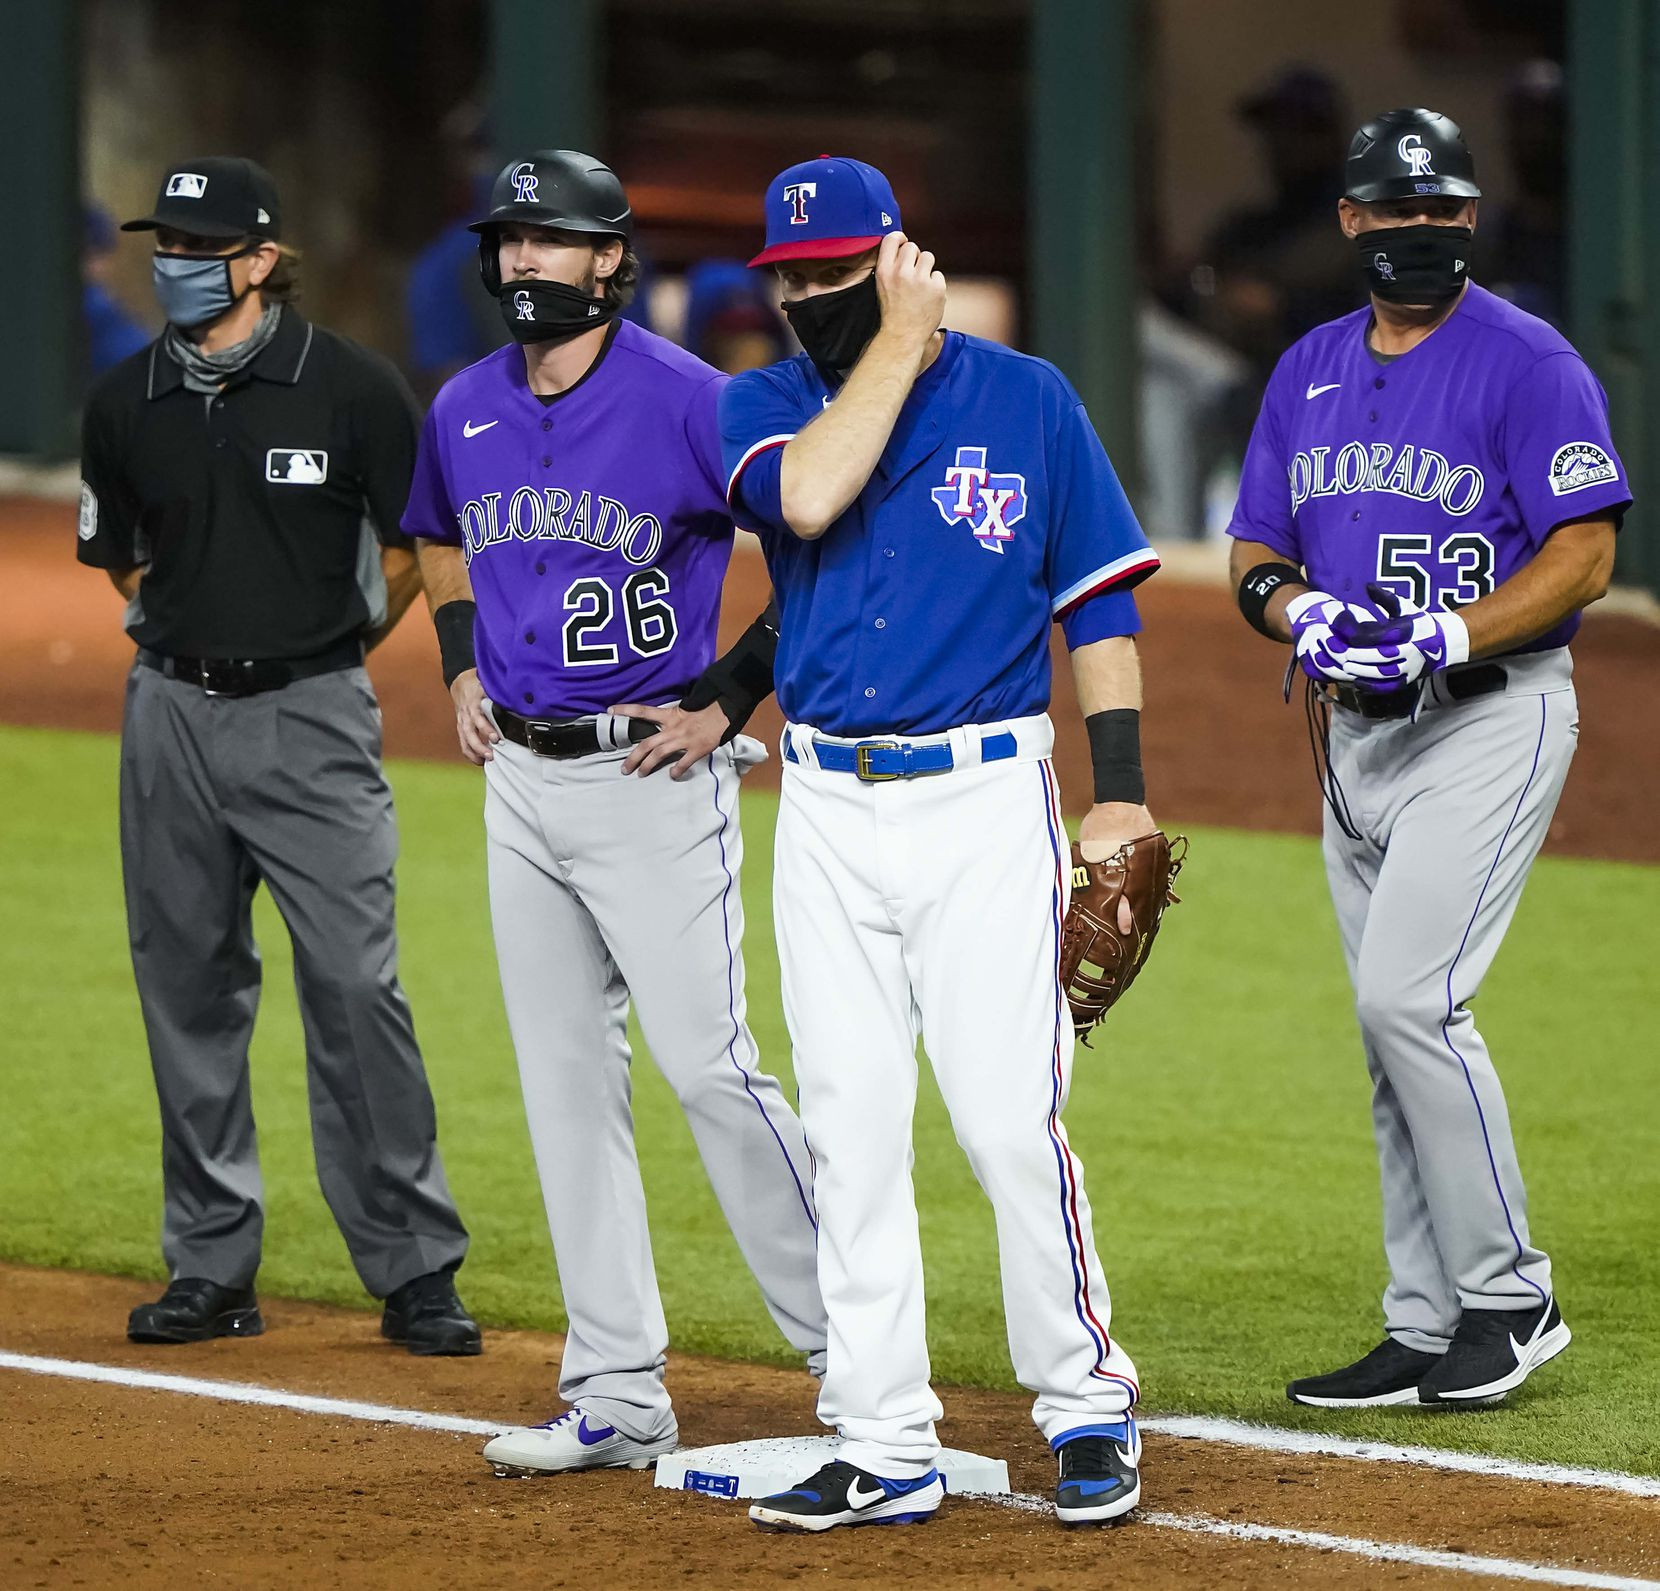 Texas Rangers first baseman Todd Frazier adjusts his face mask as umpire Chris Guccione, Colorado Rockies outfield David Dahl and first base coach Ronnie Gideon all wear theirs during the first inning of an exhibition game at Globe Life Field on Tuesday, July 21, 2020.